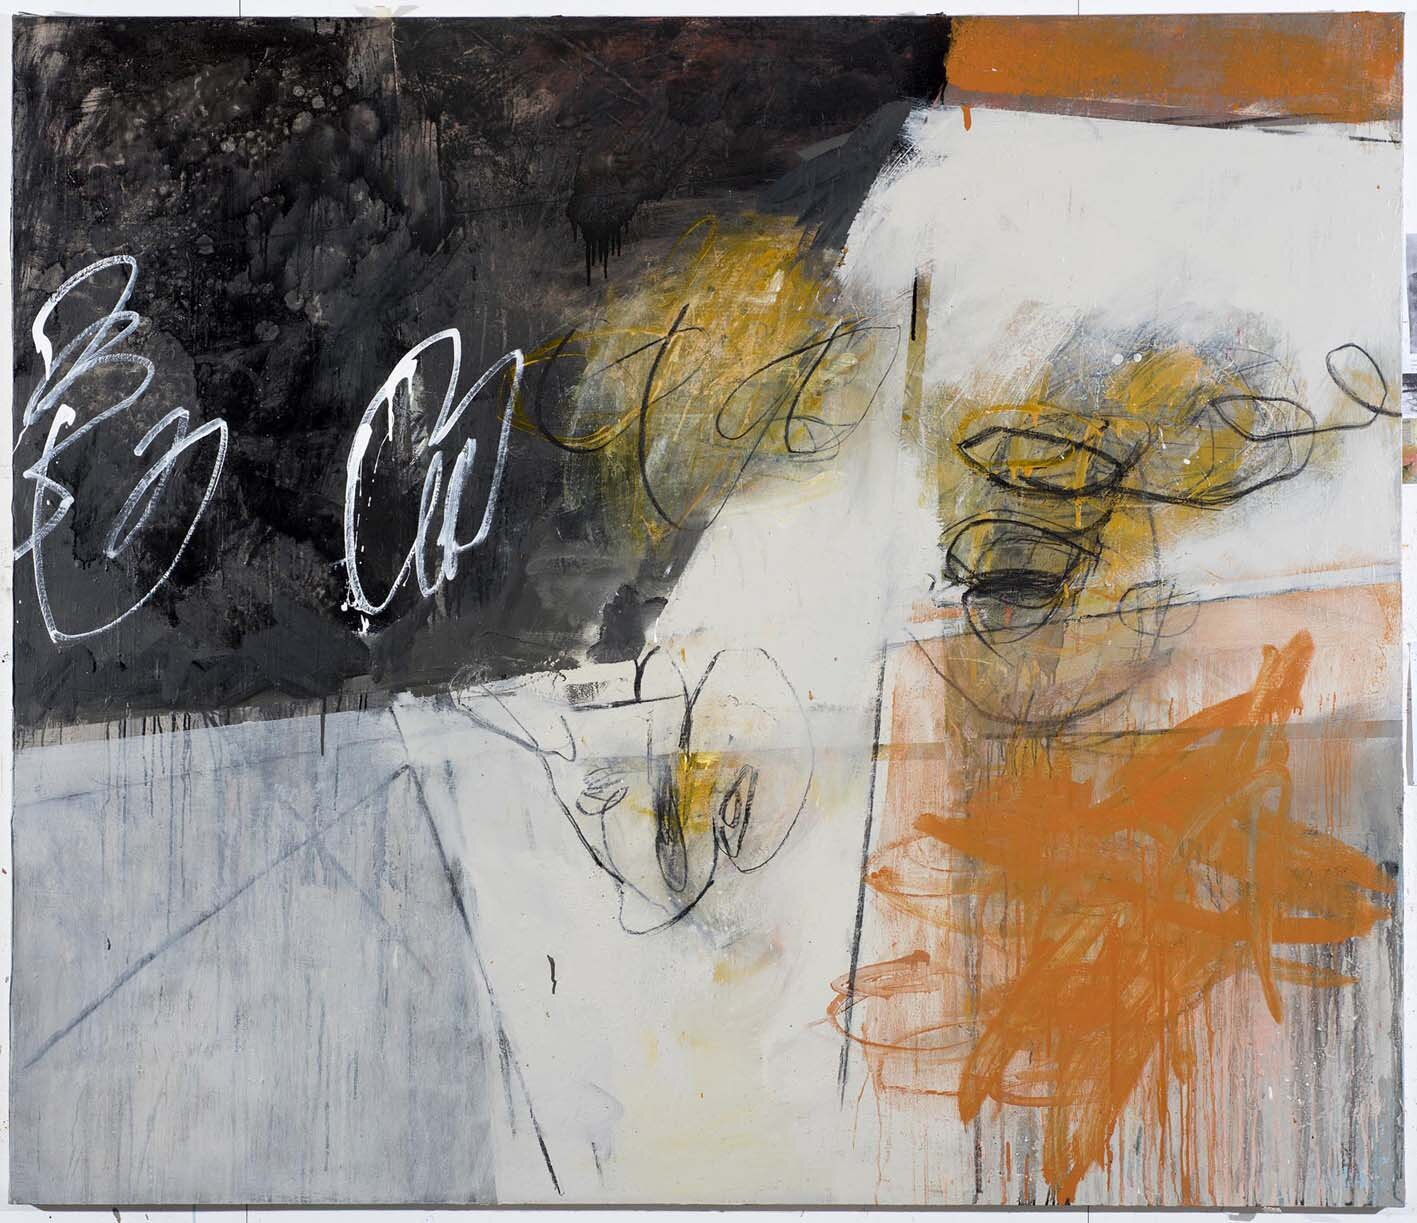 Day Bowman_Plashy Place 1_oil and charcoal and conte on canvas_172  x 200 x 4 cm_2018_DSC_2556.jpg